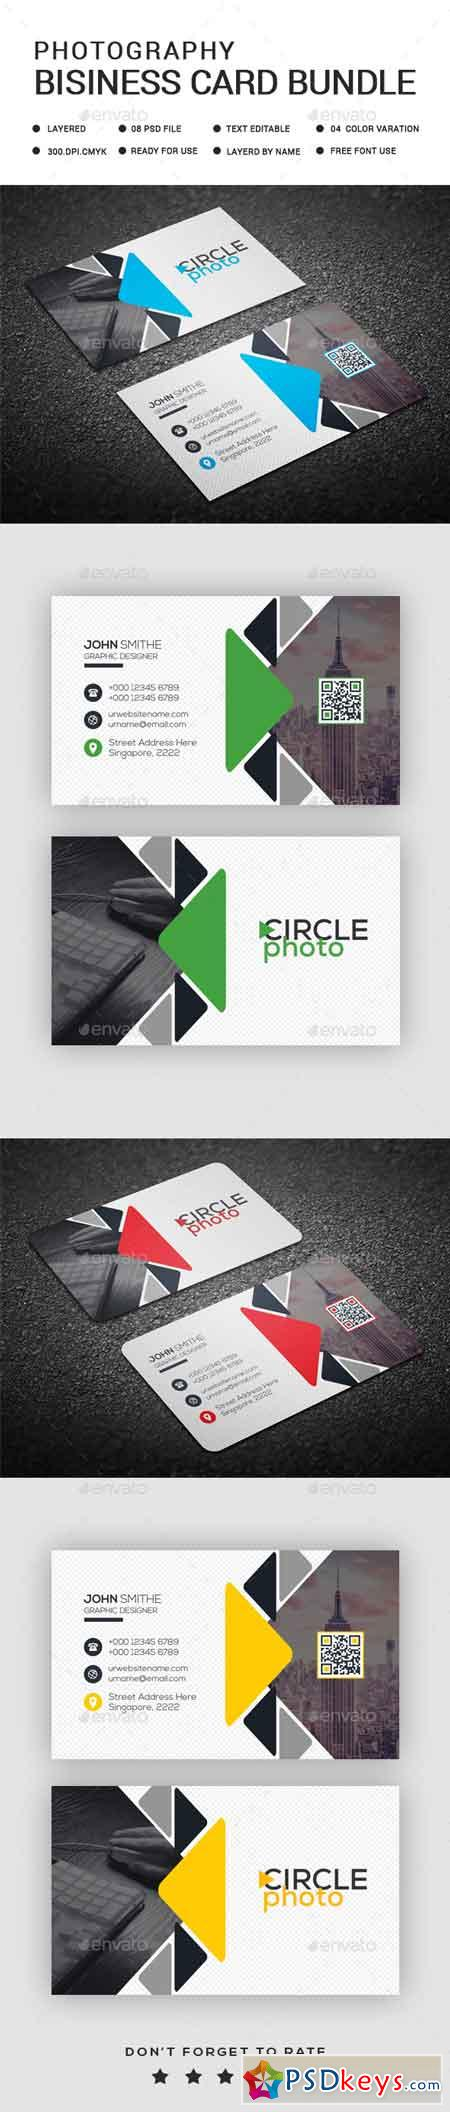 Business cards free download photoshop vector stock image via photography business card 22484393 reheart Choice Image